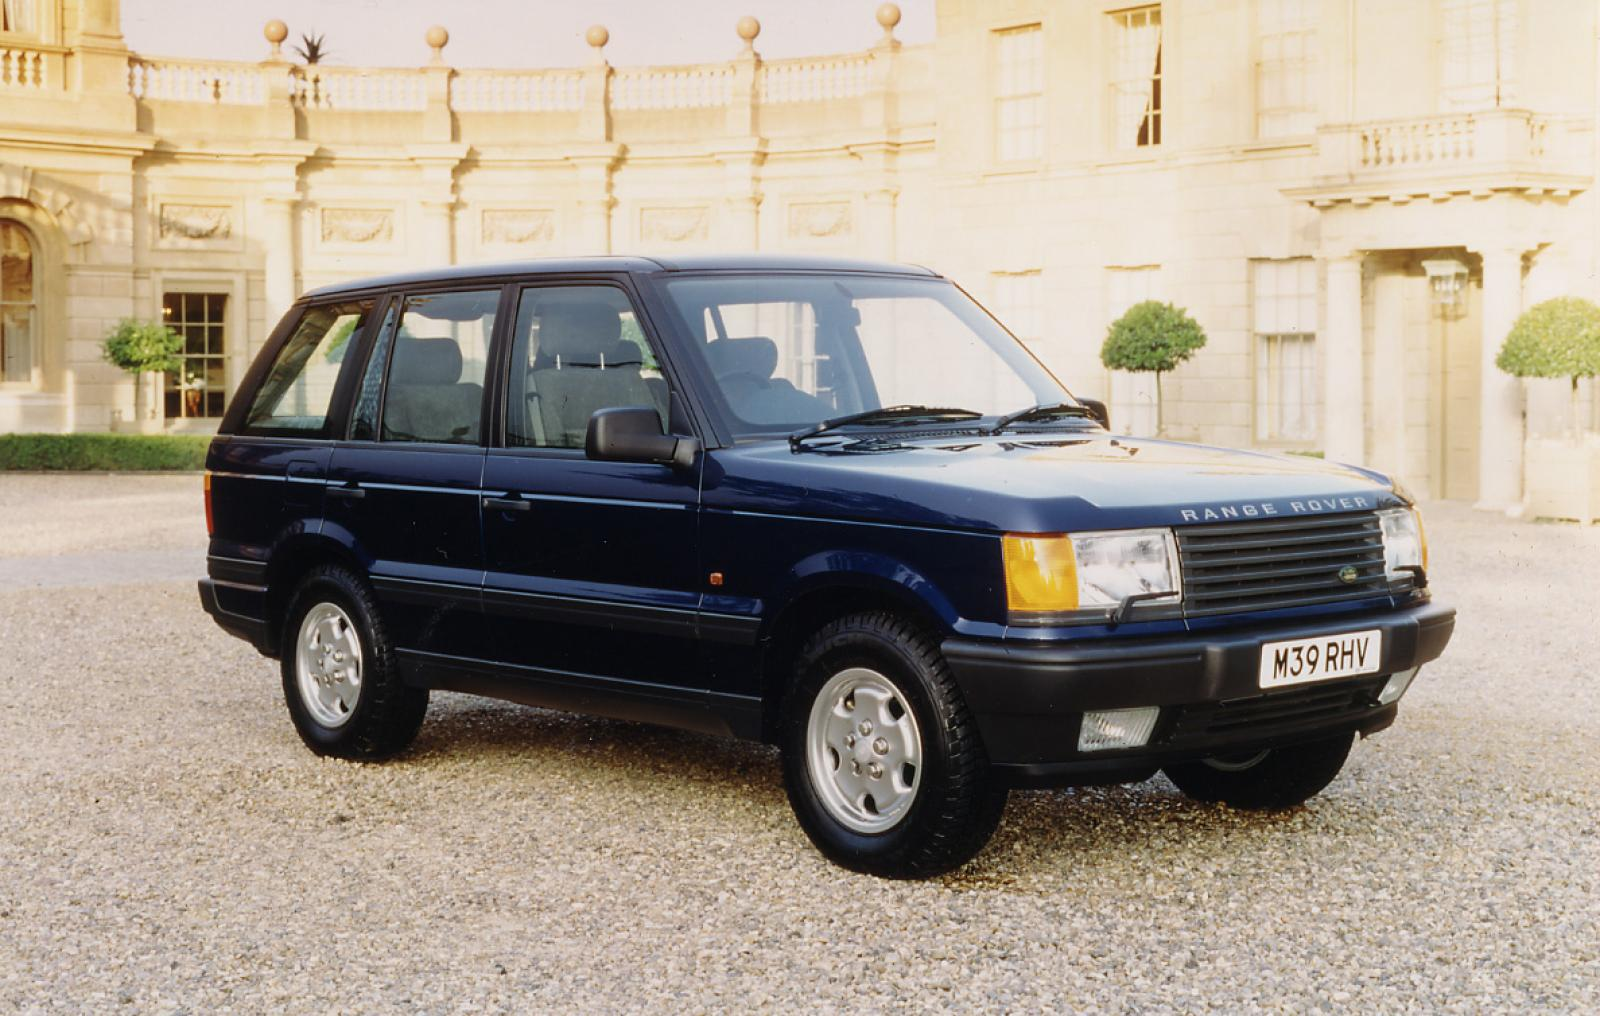 No Reserve: One-Owner 1998 Land Rover Range Rover 4.6 HSE ... |Red 1998 Land Rover